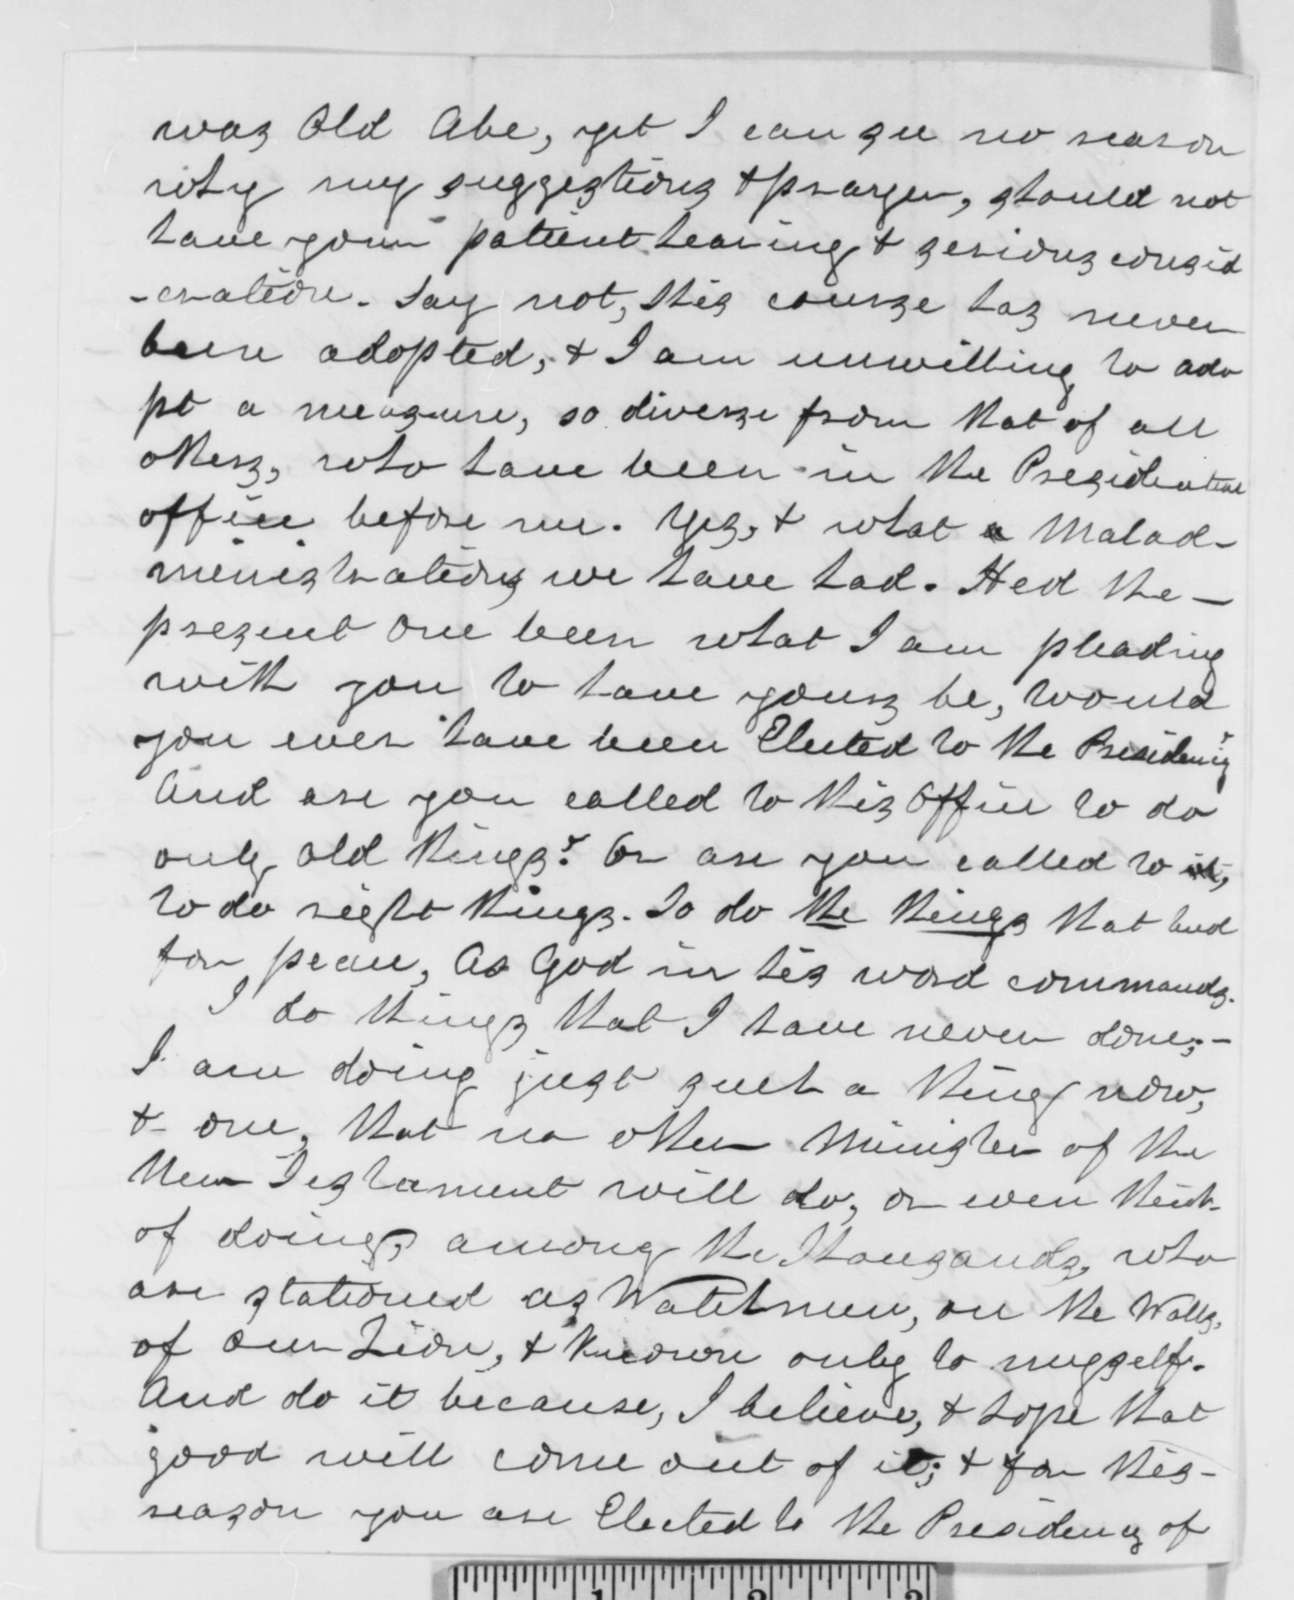 E. Hart to Abraham Lincoln, Sunday, November 04, 1860  (Advice on cabinet appointments)